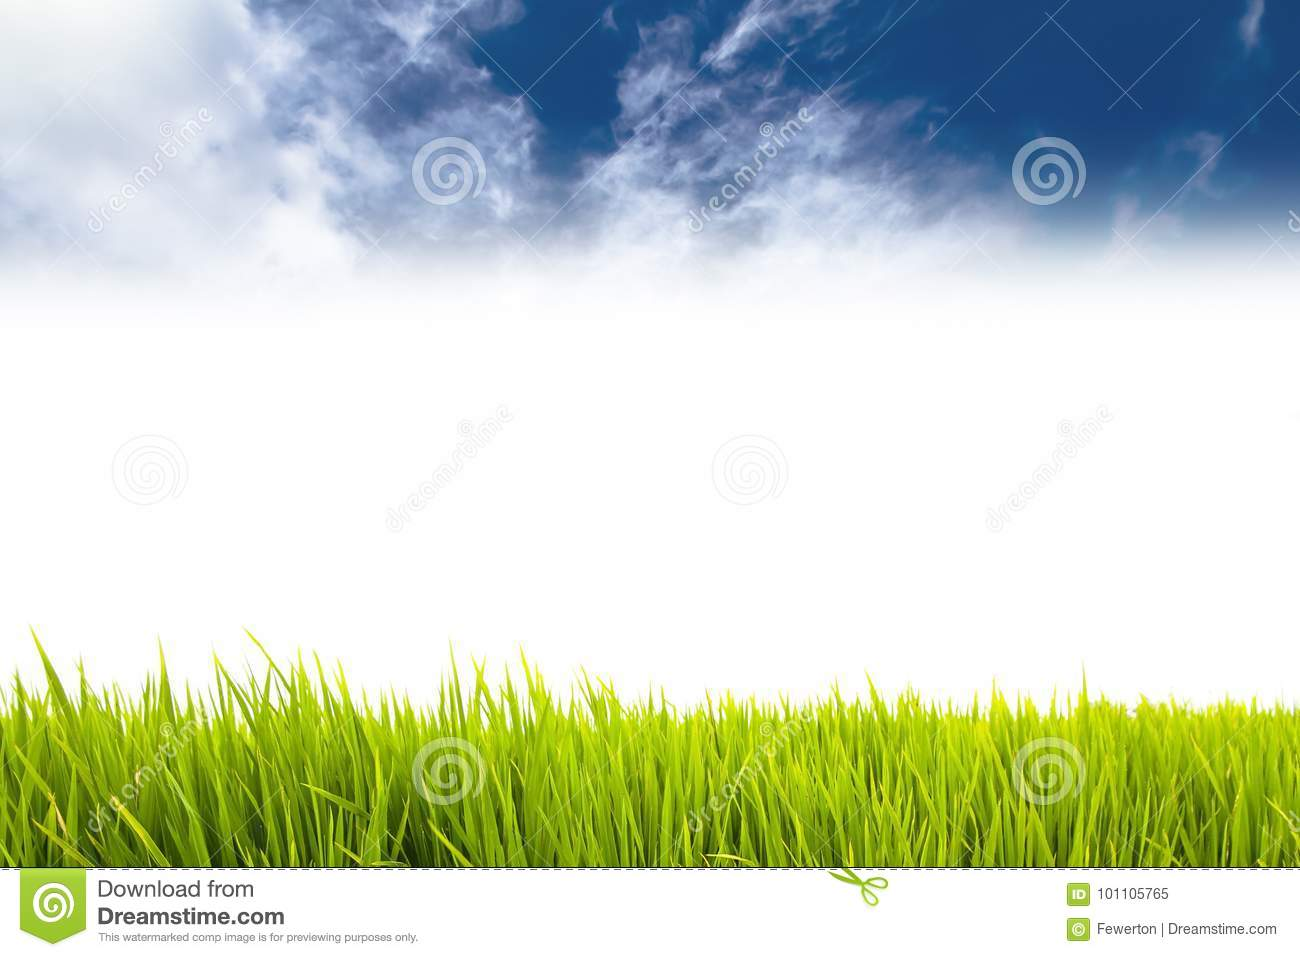 Fresh green grass as border on the lower side of the horizontal frame in a seamless empty white background with blue sky